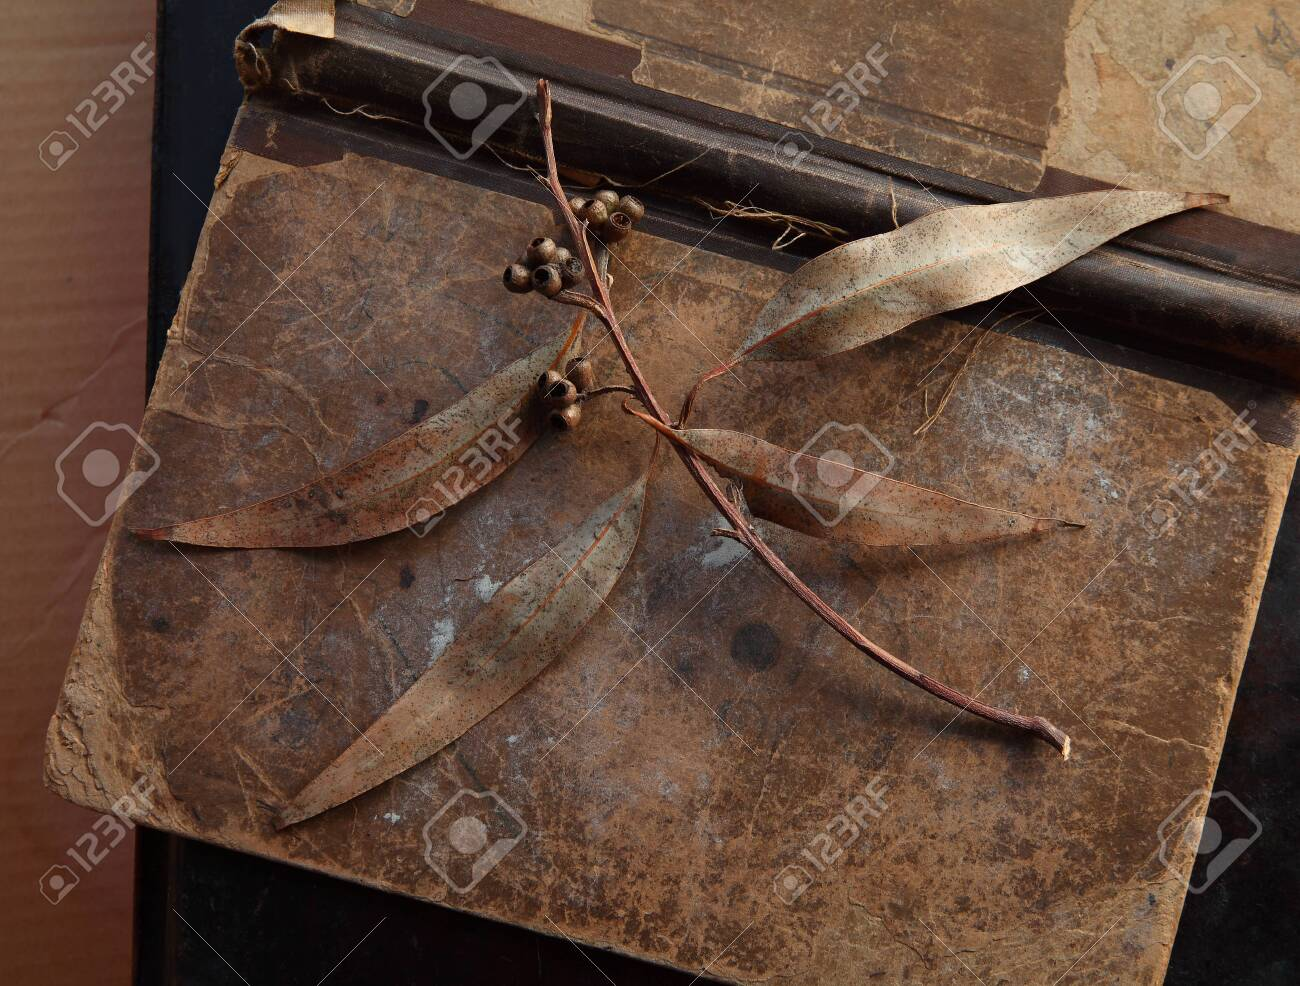 Eucalyptus leaves with seed pods on an old, damaged book - 141340191